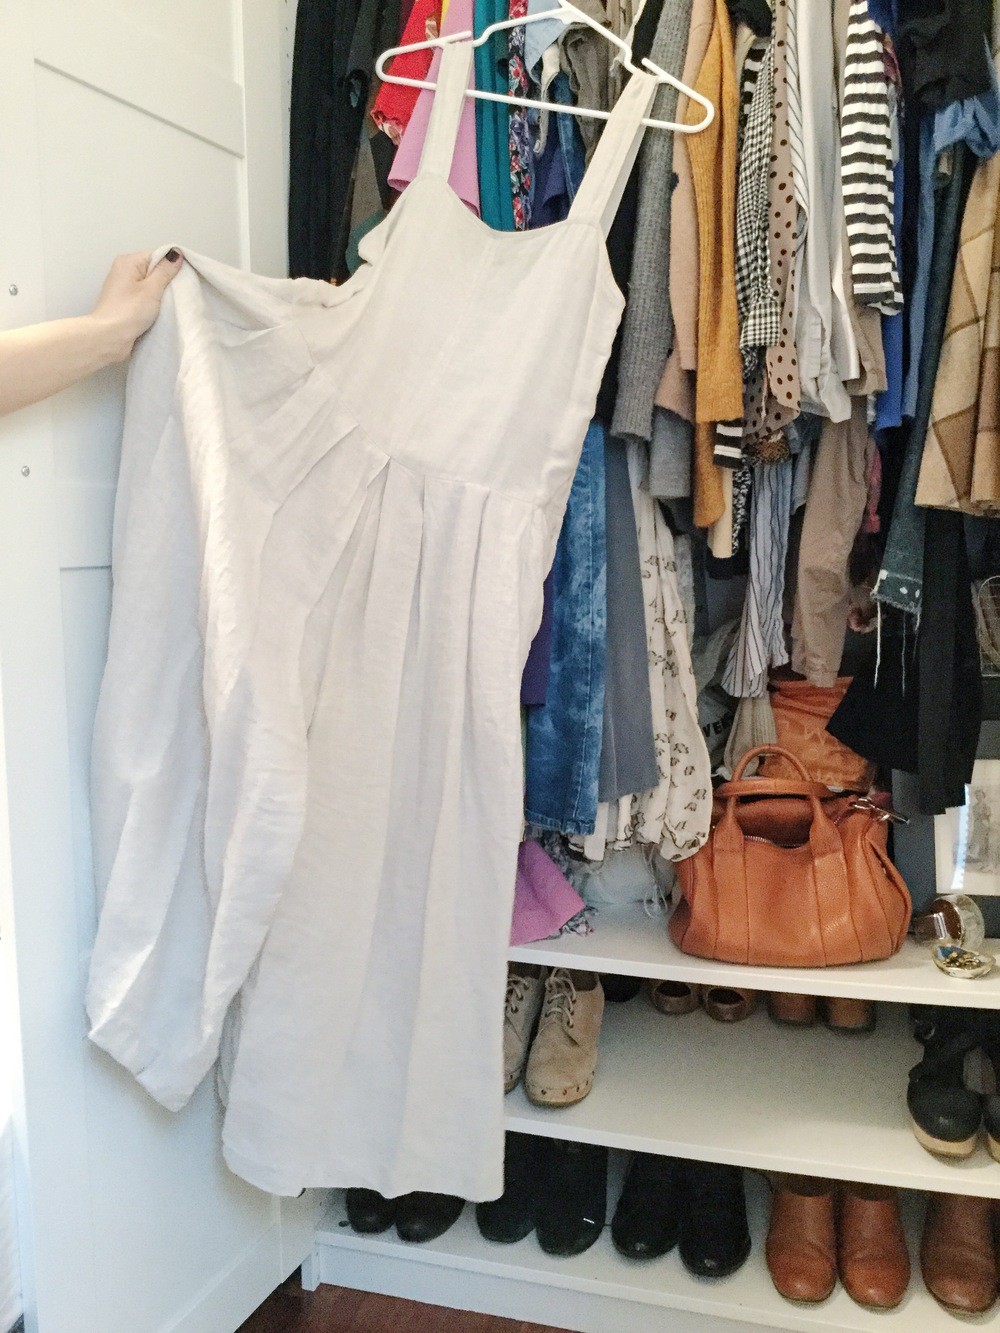 A killer Rachel Comey romper keeps good company amongst many of Olga's sample sale + thrift scores.